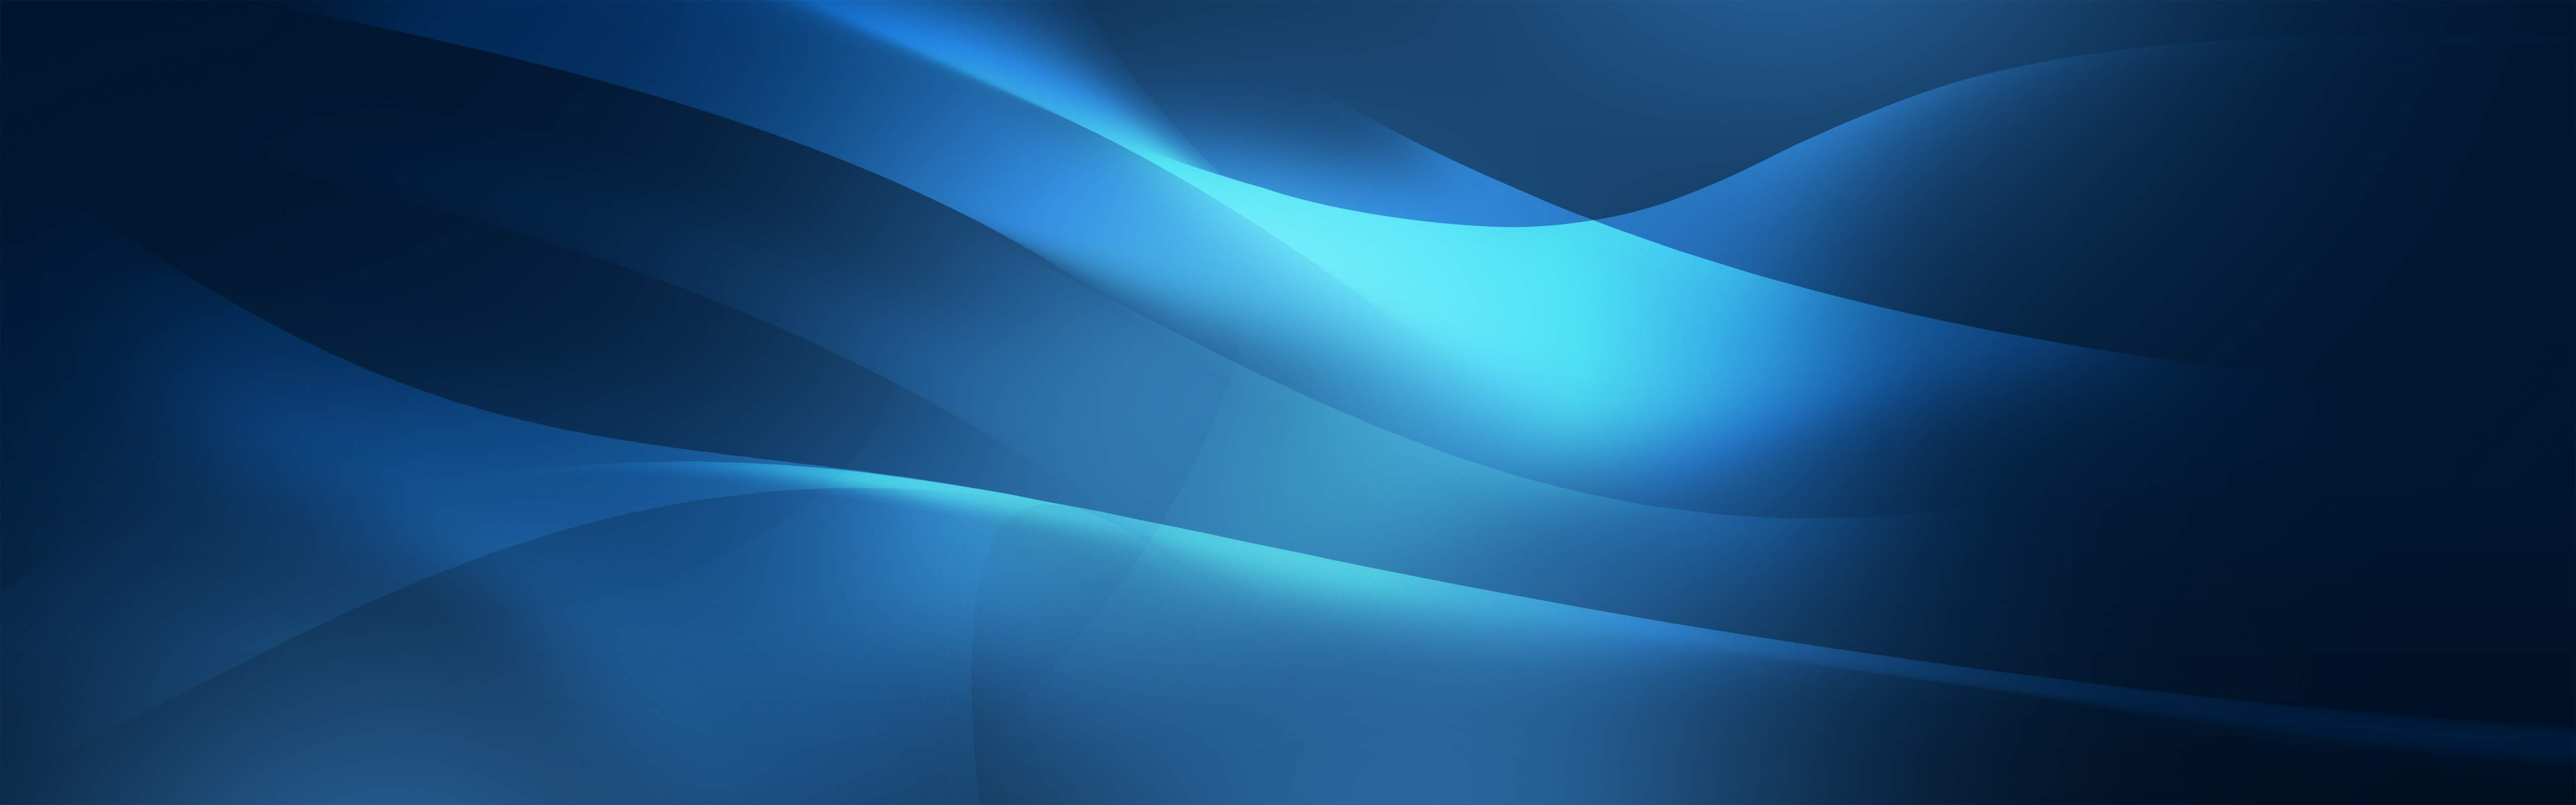 Blue-Background-16-1